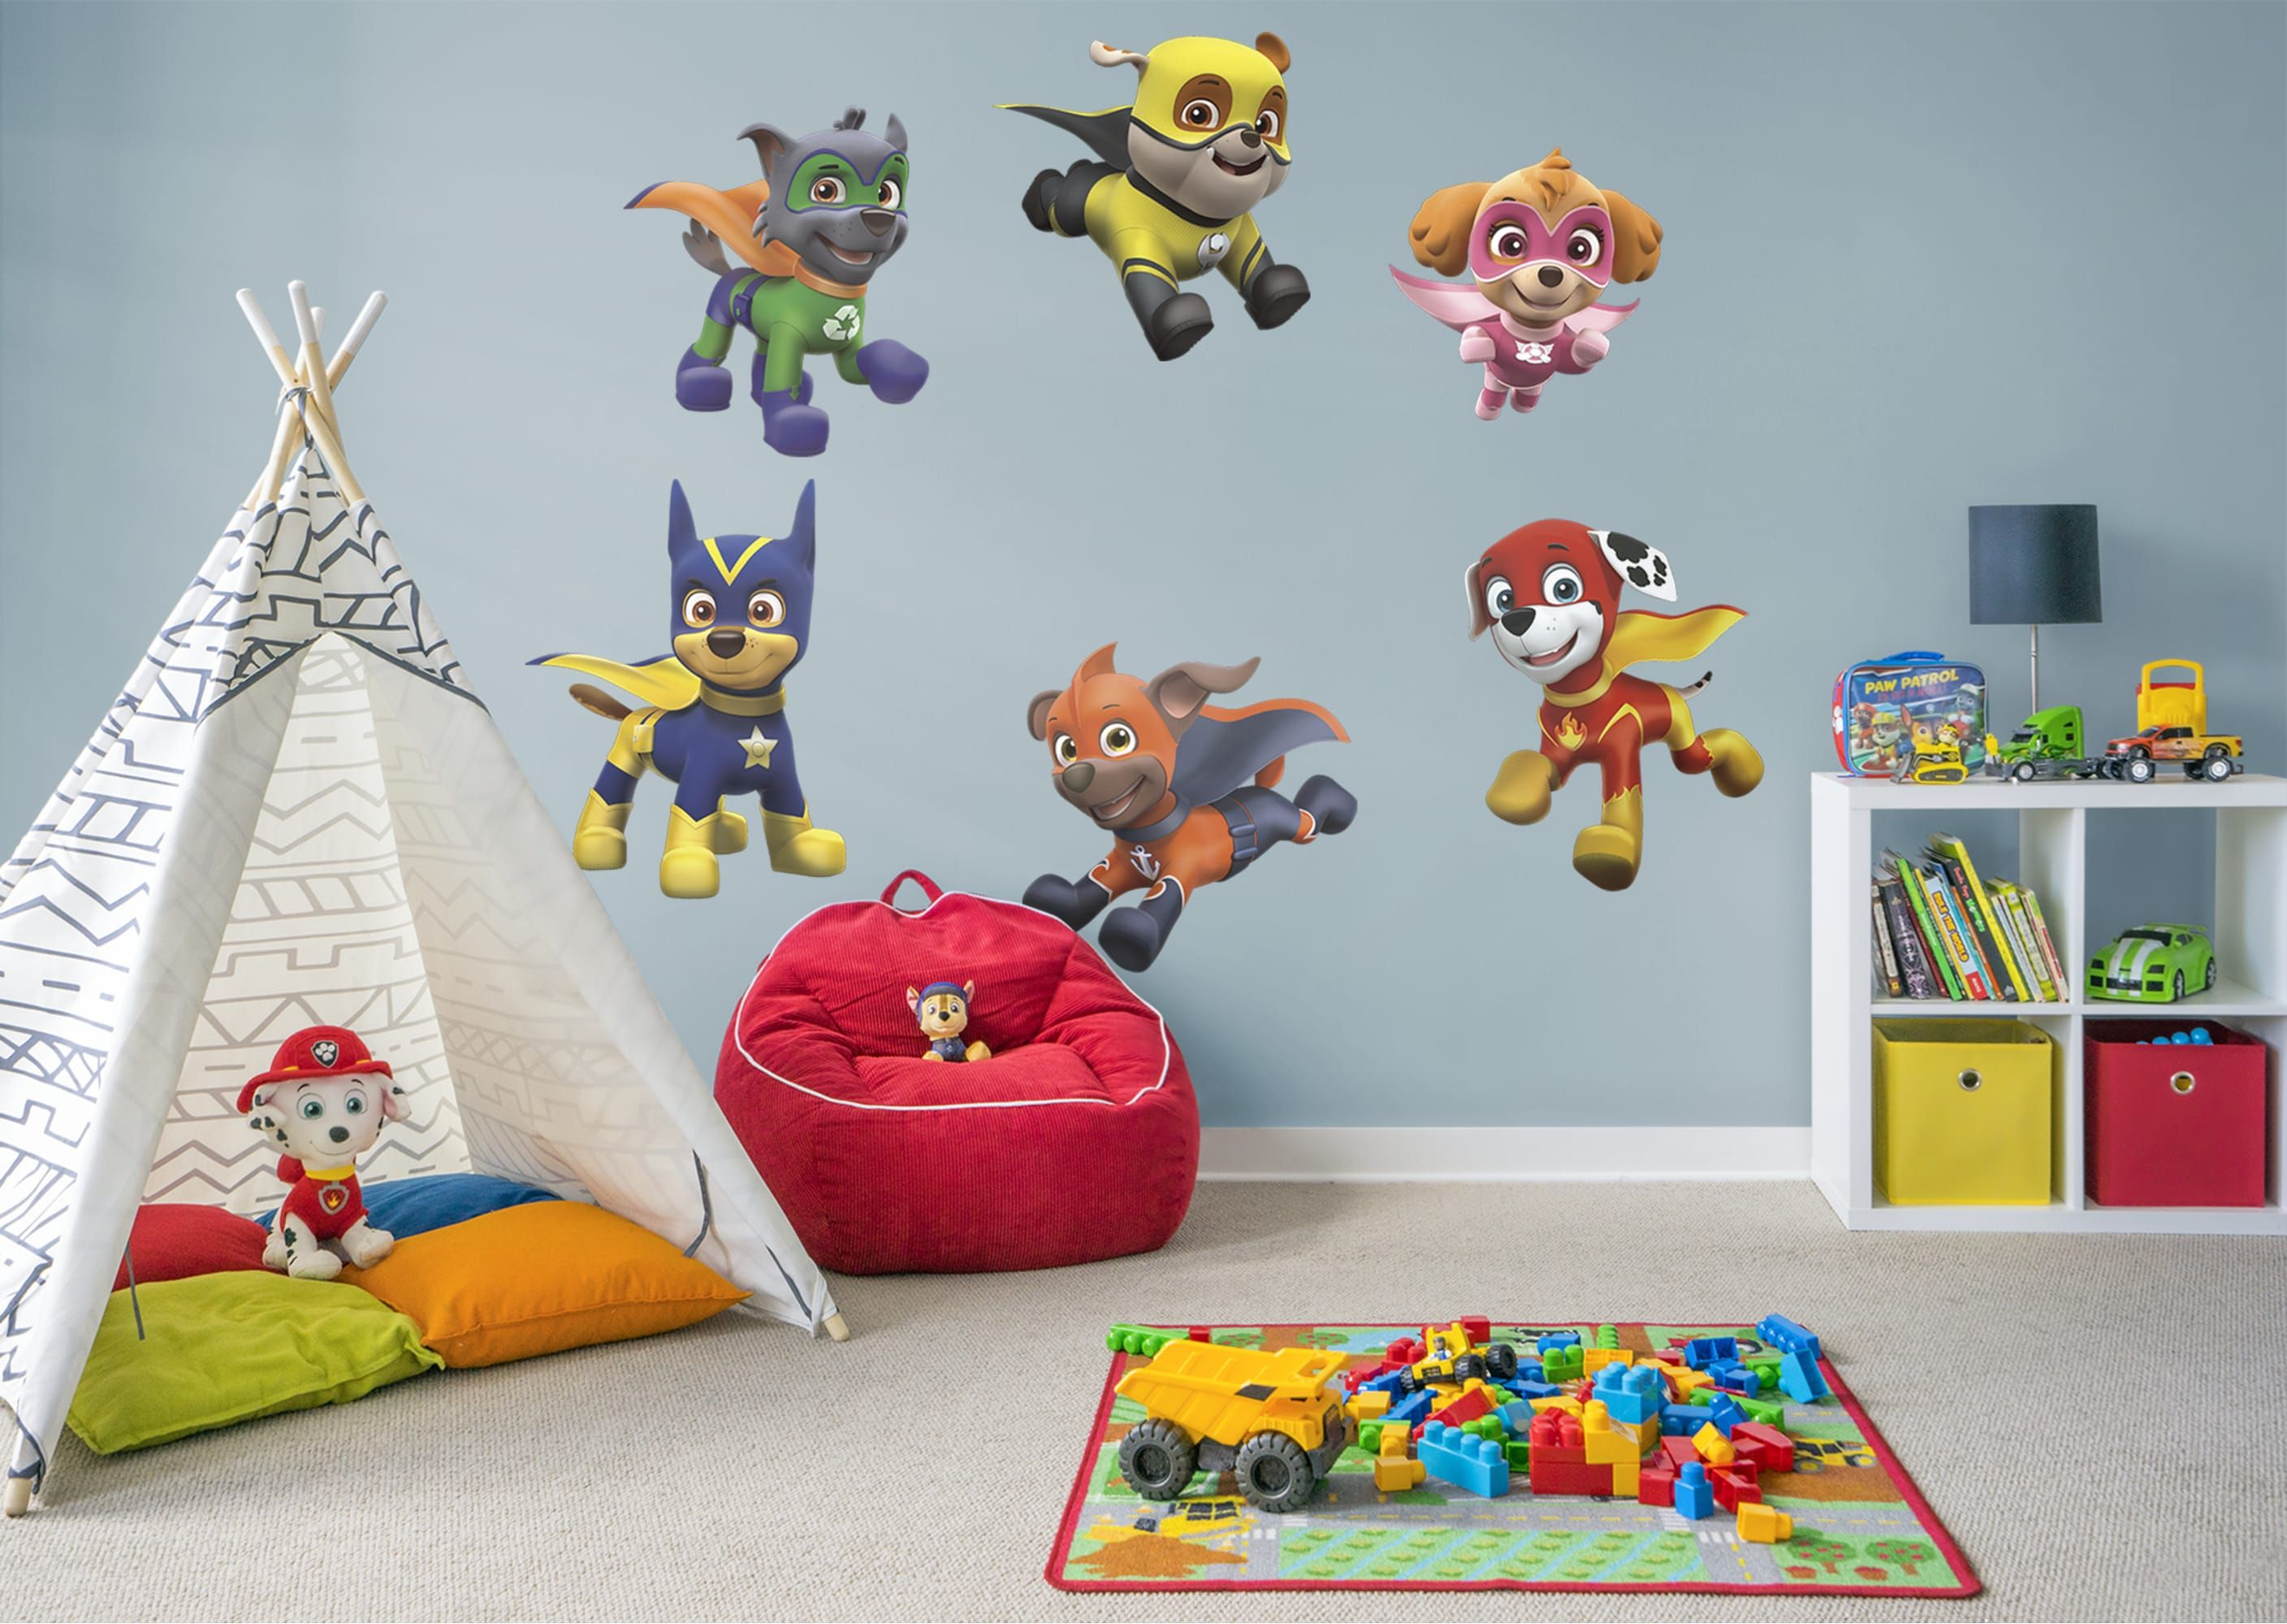 Paw Patrol Fan Prove It Put Your Passion On Display With A Giant Paw Patrol Super Pups Collection Fathe Paw Patrol Room Paw Patrol Bedroom Kid Bathroom Decor